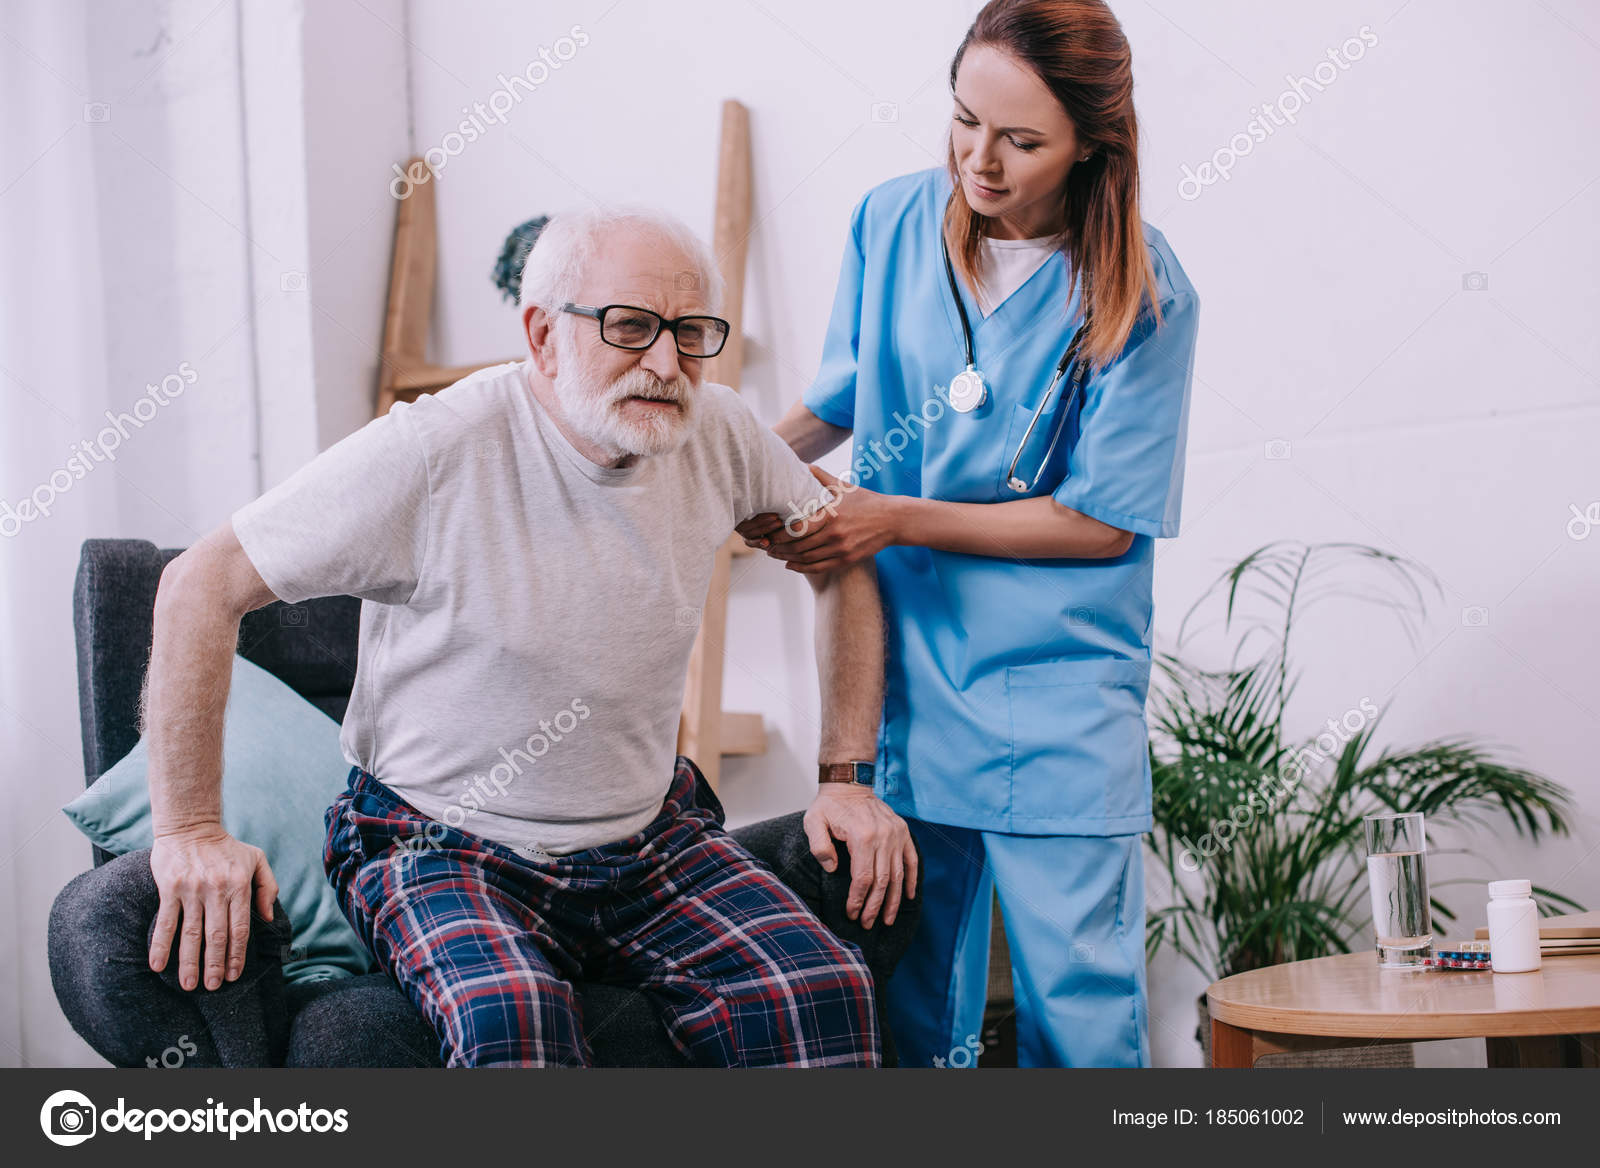 chair helps you stand up height for 30 inch table nurse helping old man  stock photo